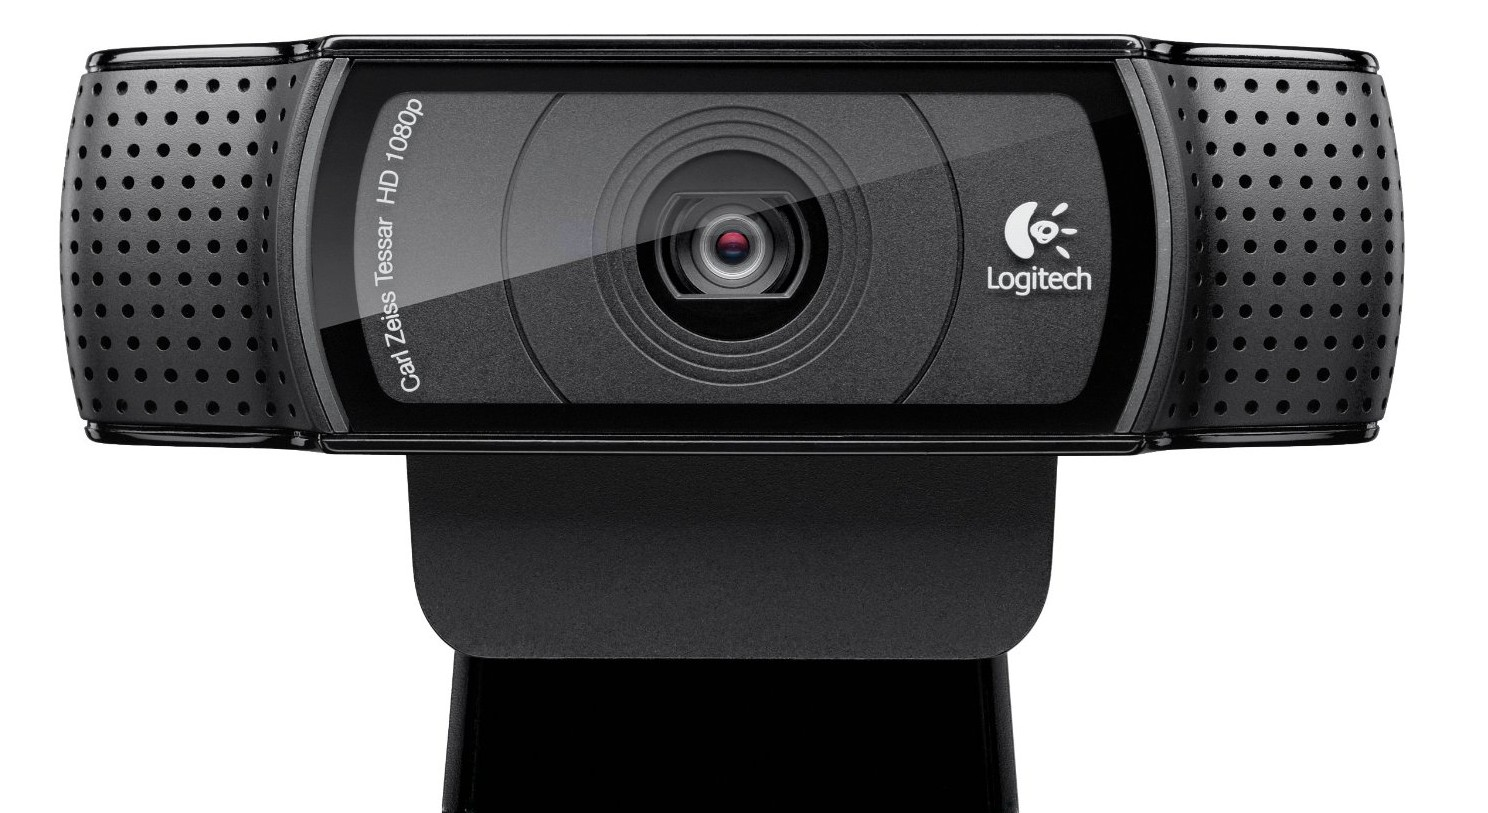 logitech-sale-amazon-story-e1431449493182.jpg